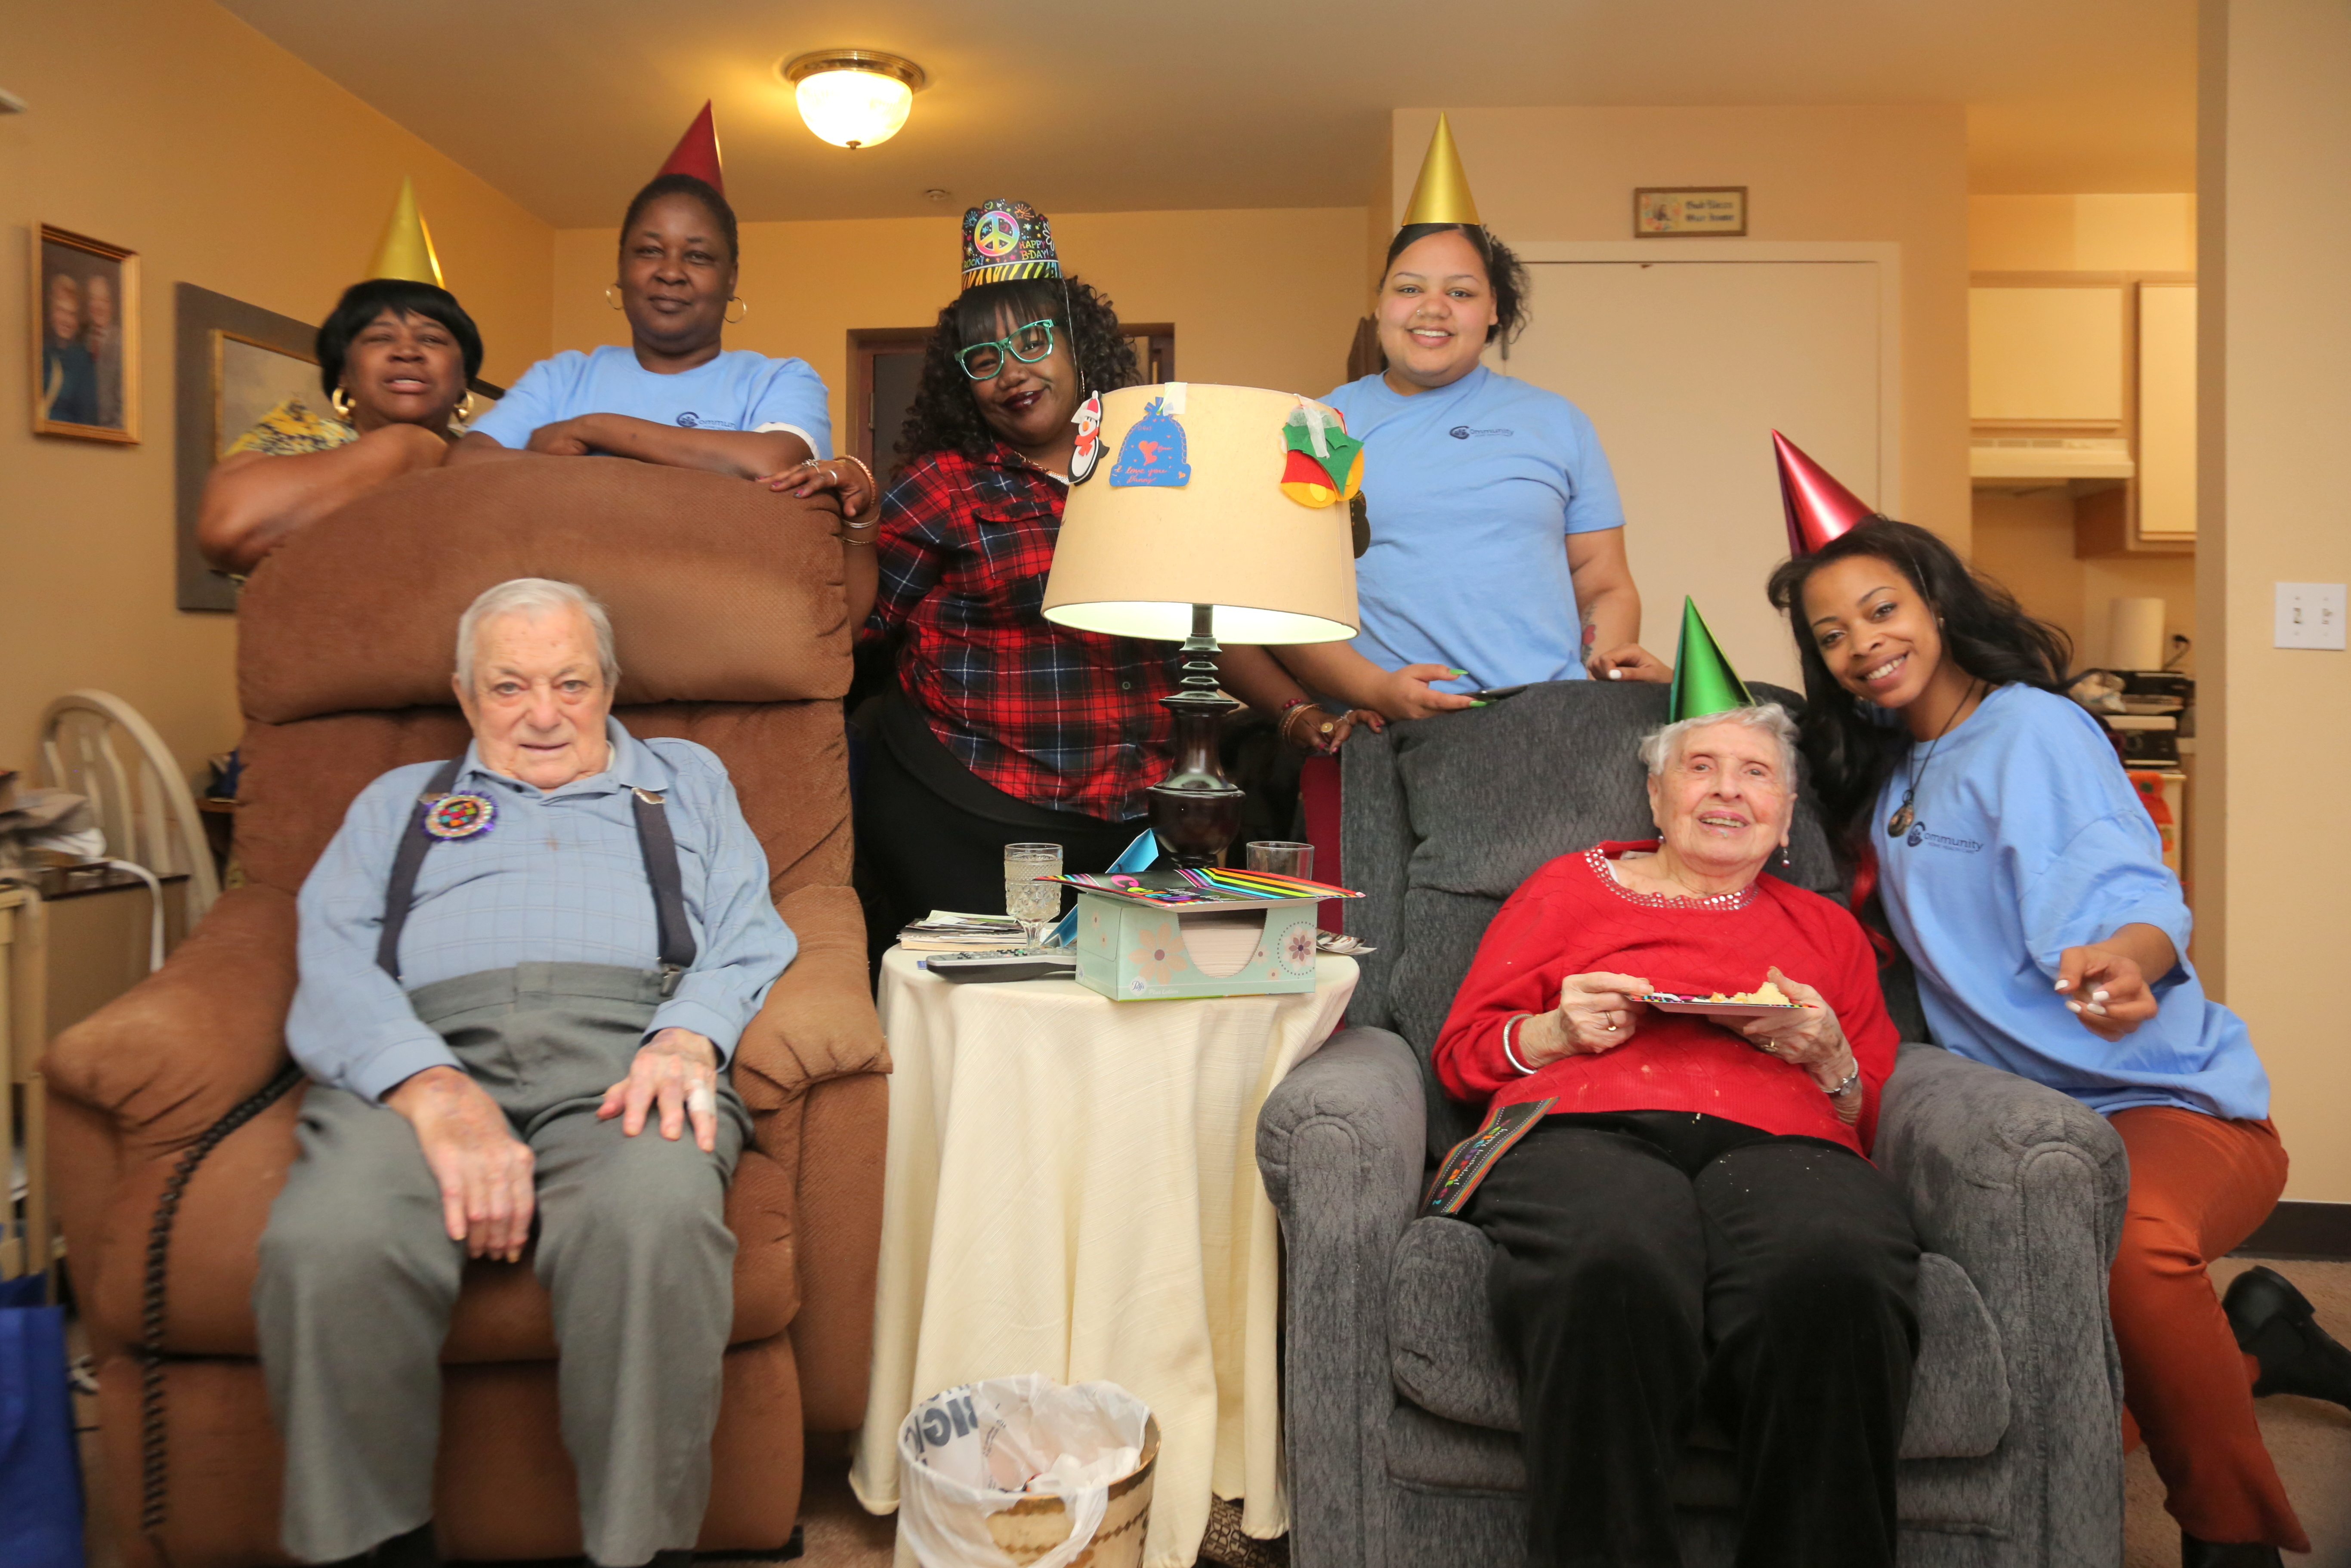 Dan Moracarco, a World War II Air Force Veteran, celebrated his 98th birthday with his home health care aides from Community Home Health Care